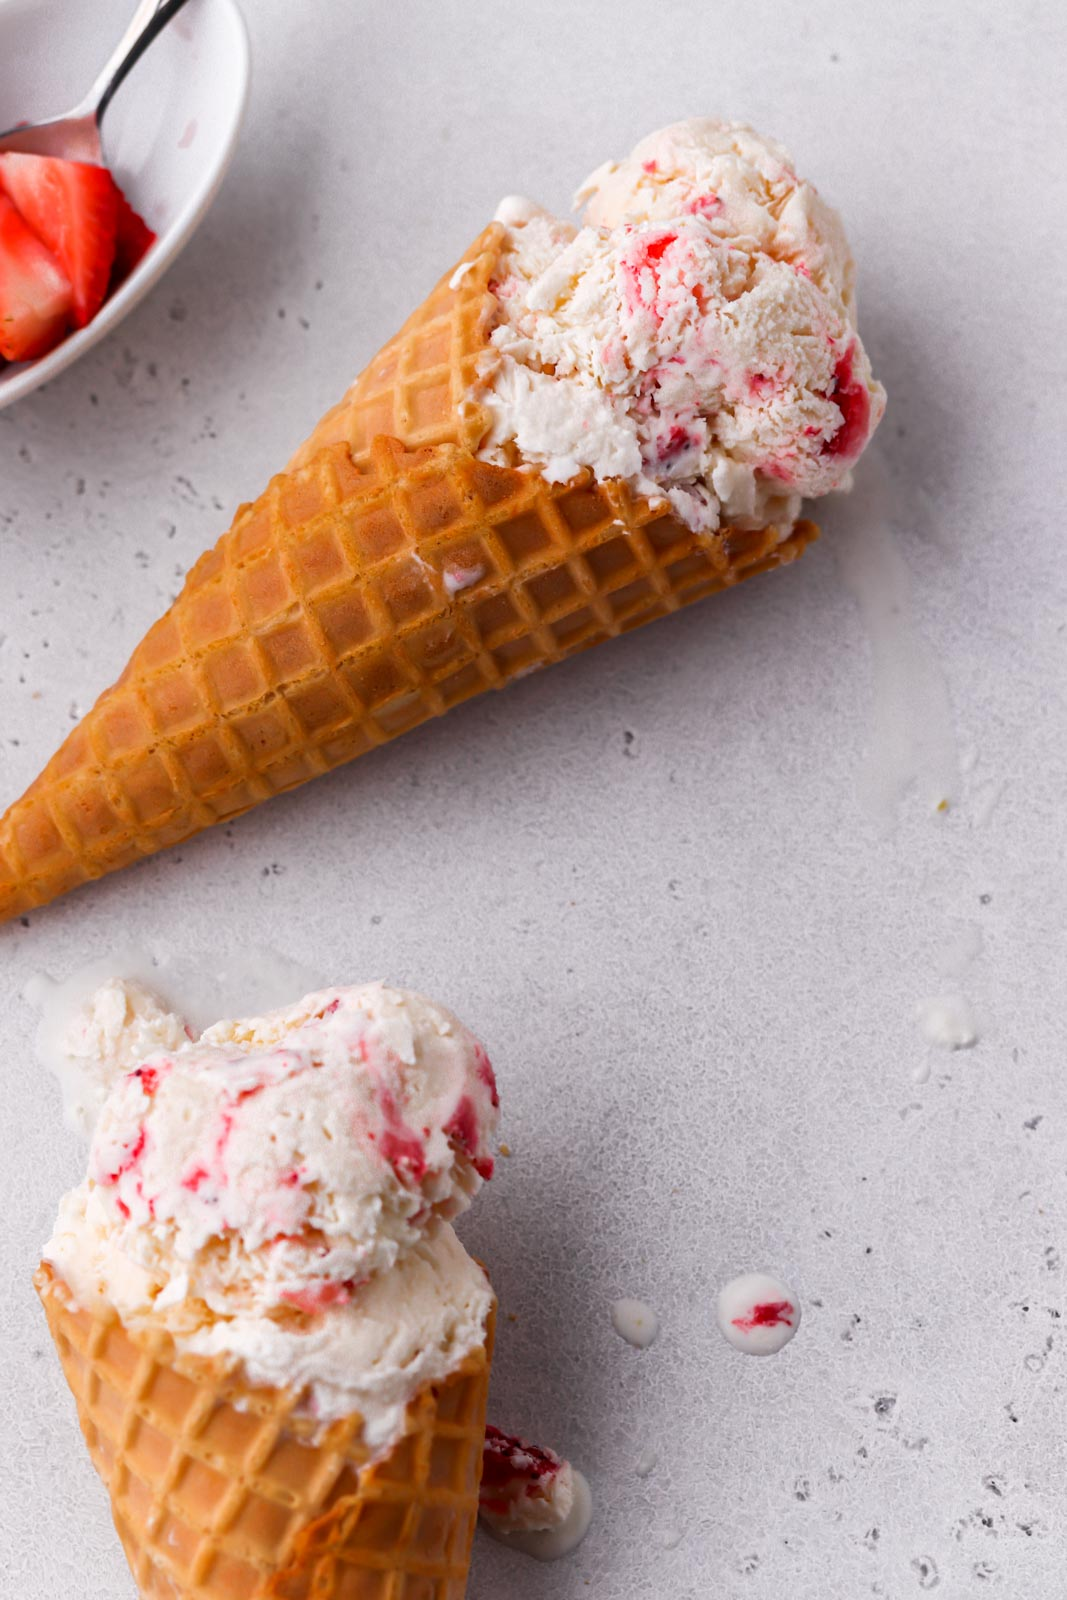 two ice cream cones with strawberries